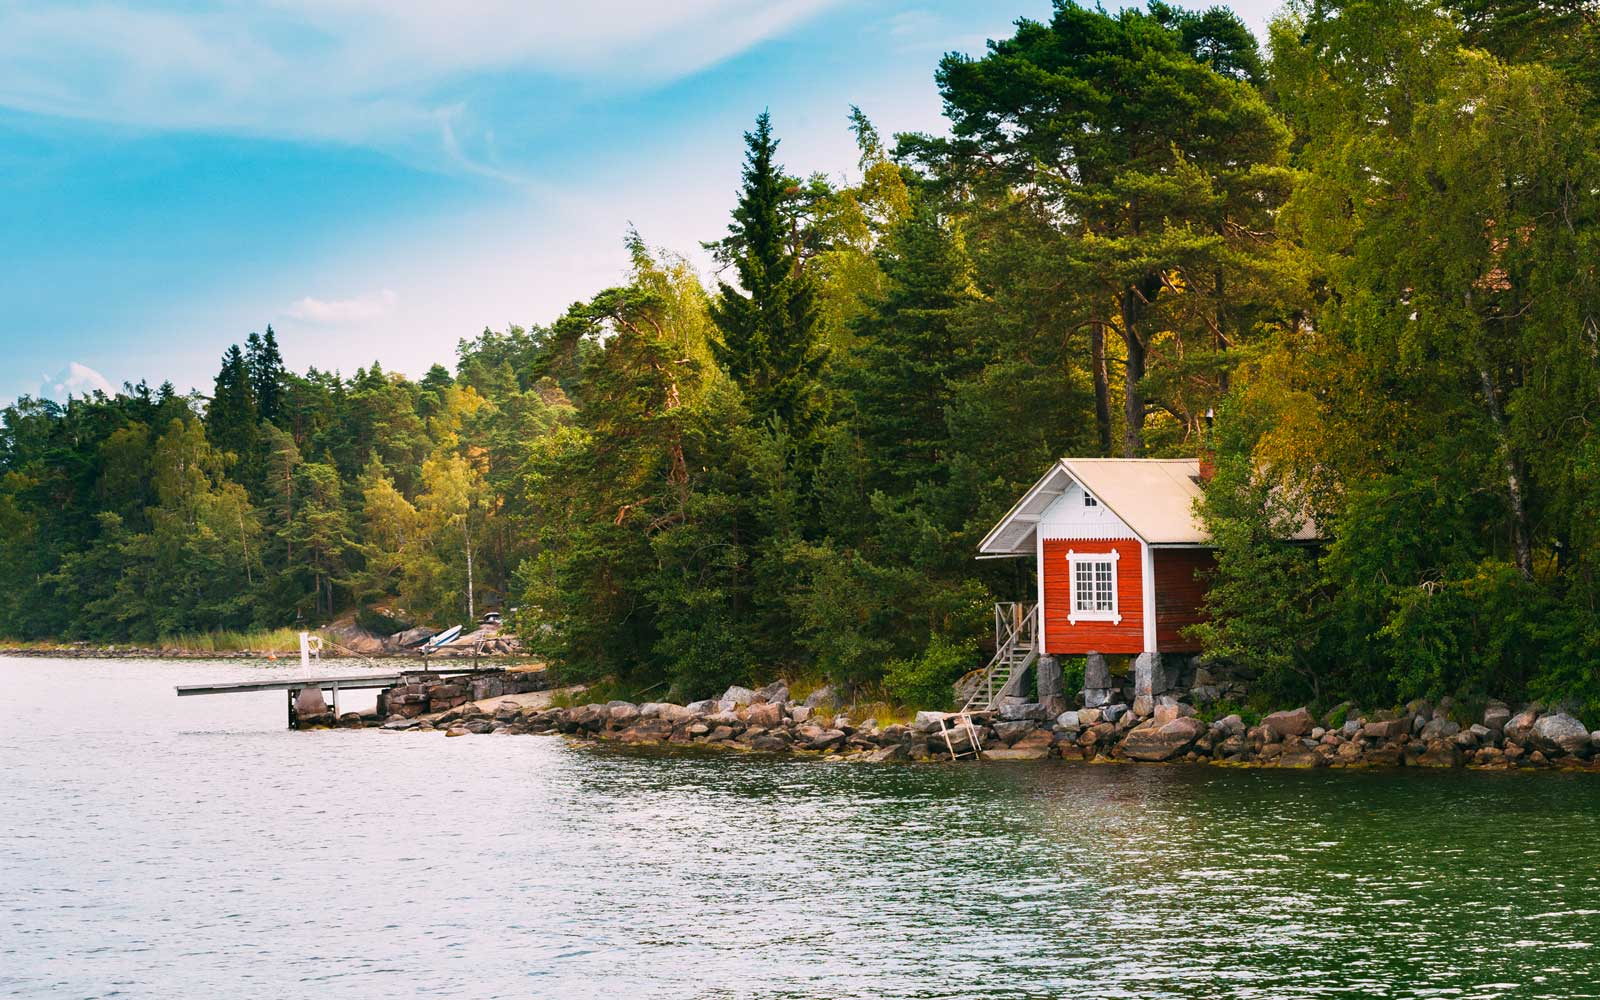 Red Small Finnish Wooden Sauna Log Cabin Island Autumn Season